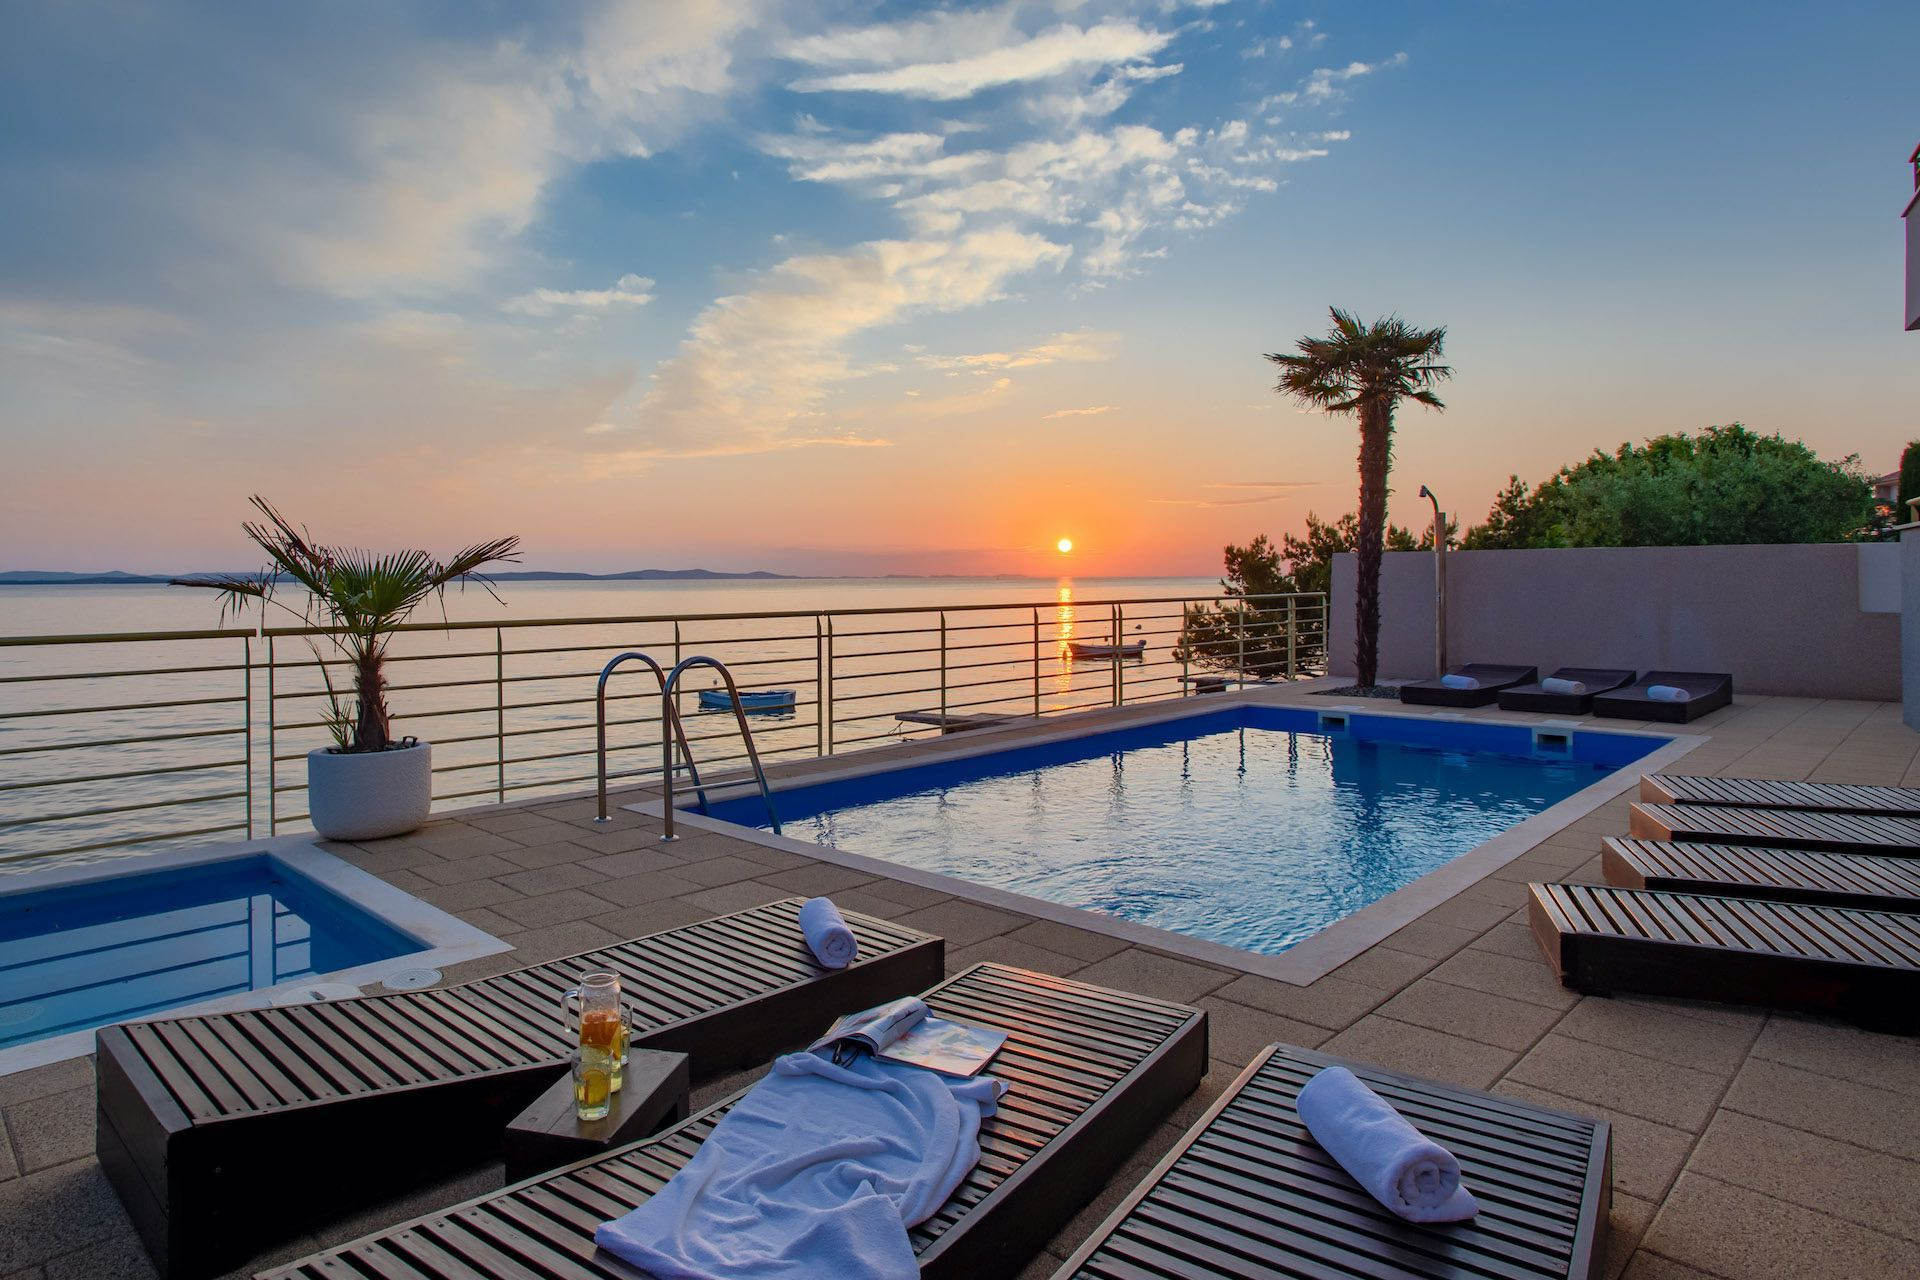 Luxury villas with pool for rent in Croatia for a perfect vacation